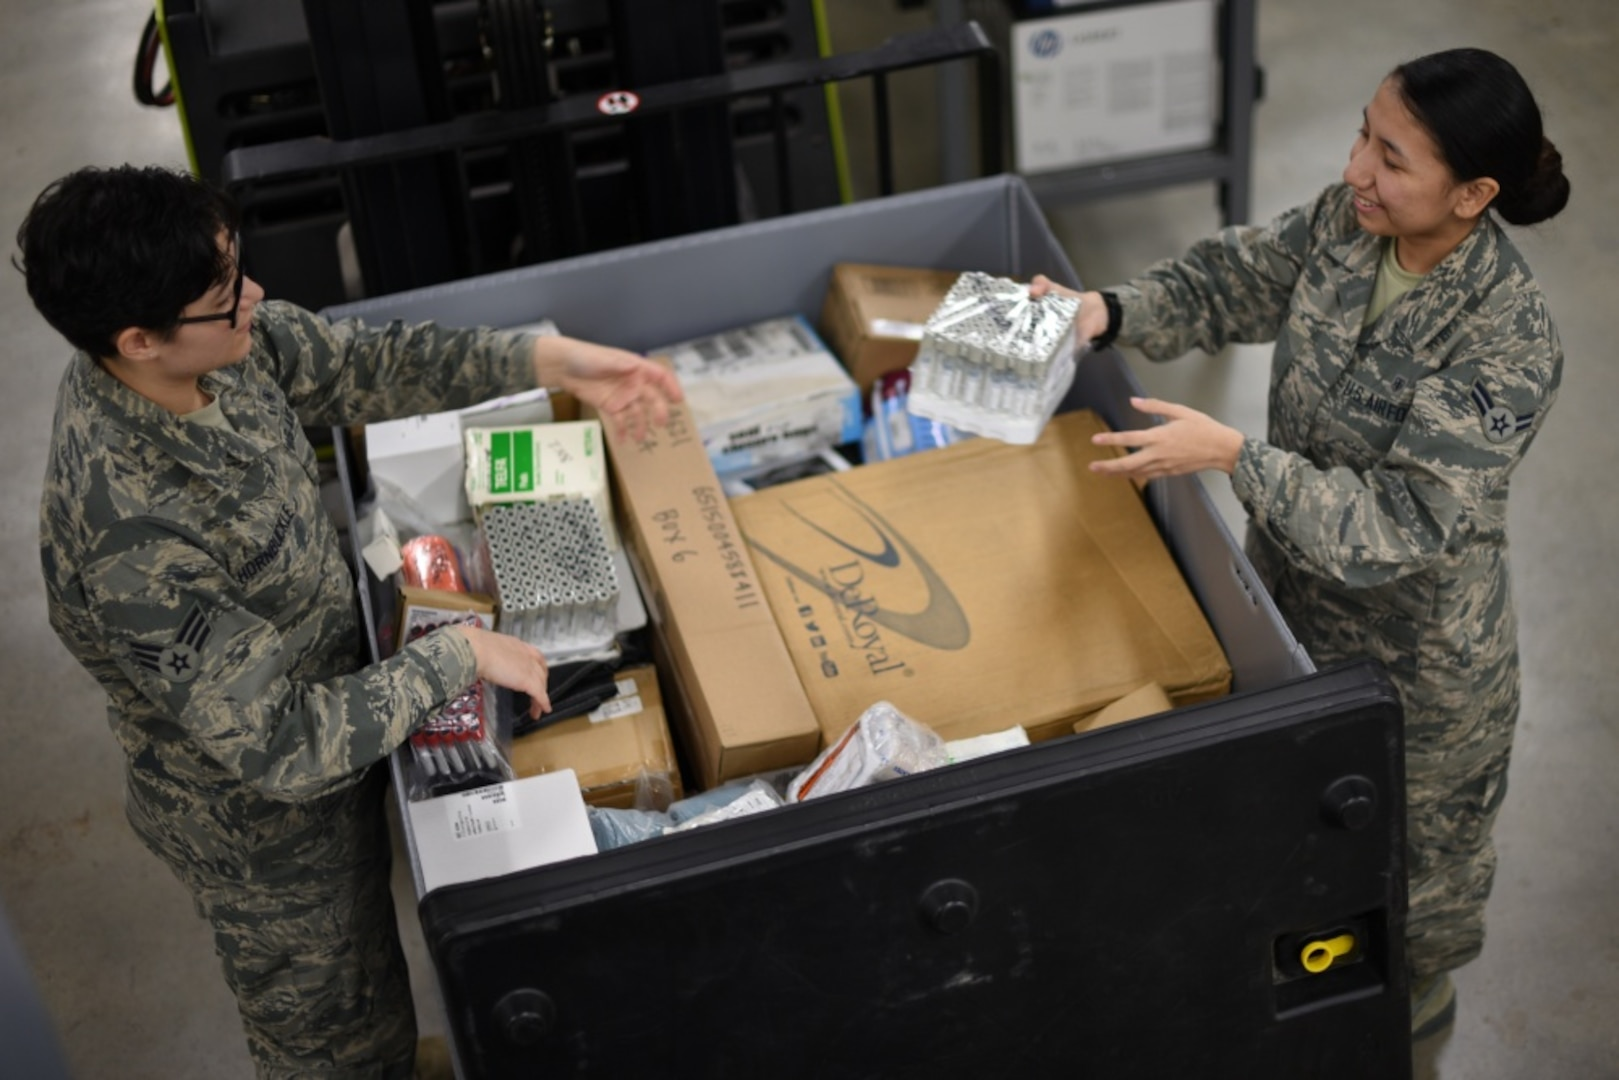 """Senior Airman Raina Hornbuckle, 22nd Medical Support Squadron medical logistician journeyman, and Airman 1st Class Ariana Vega, 22nd Medical Group medical logistician apprentice, look through medical supplies at McConnell Air Force Base, Kan., March 11, 2019. Thousands of deliveries like this each year are made possible by the Defense Logistics Agency Troop Support Medical's Medical Surgical Prime Vendor program named """"Best in Class"""" by the Office of Management and Budget in July 2021."""